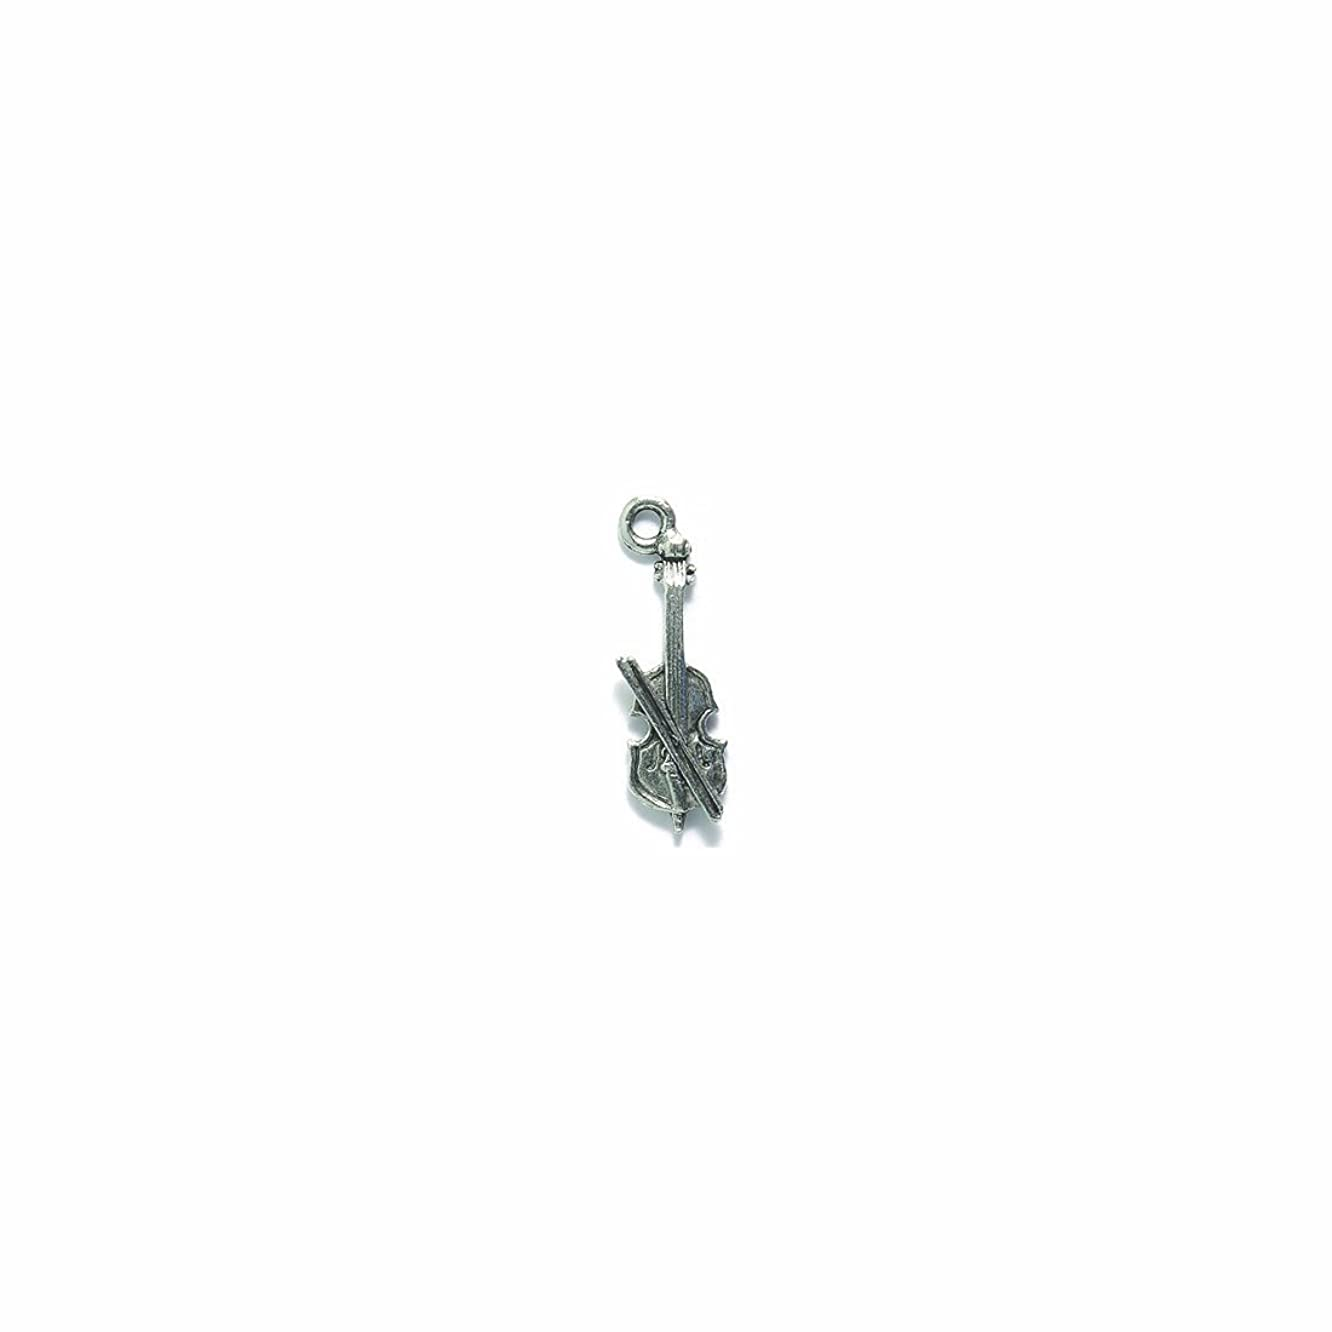 Shipwreck Beads Pewter Cello with Bow Charm, Silver, 8 by 23mm, 5-Piece